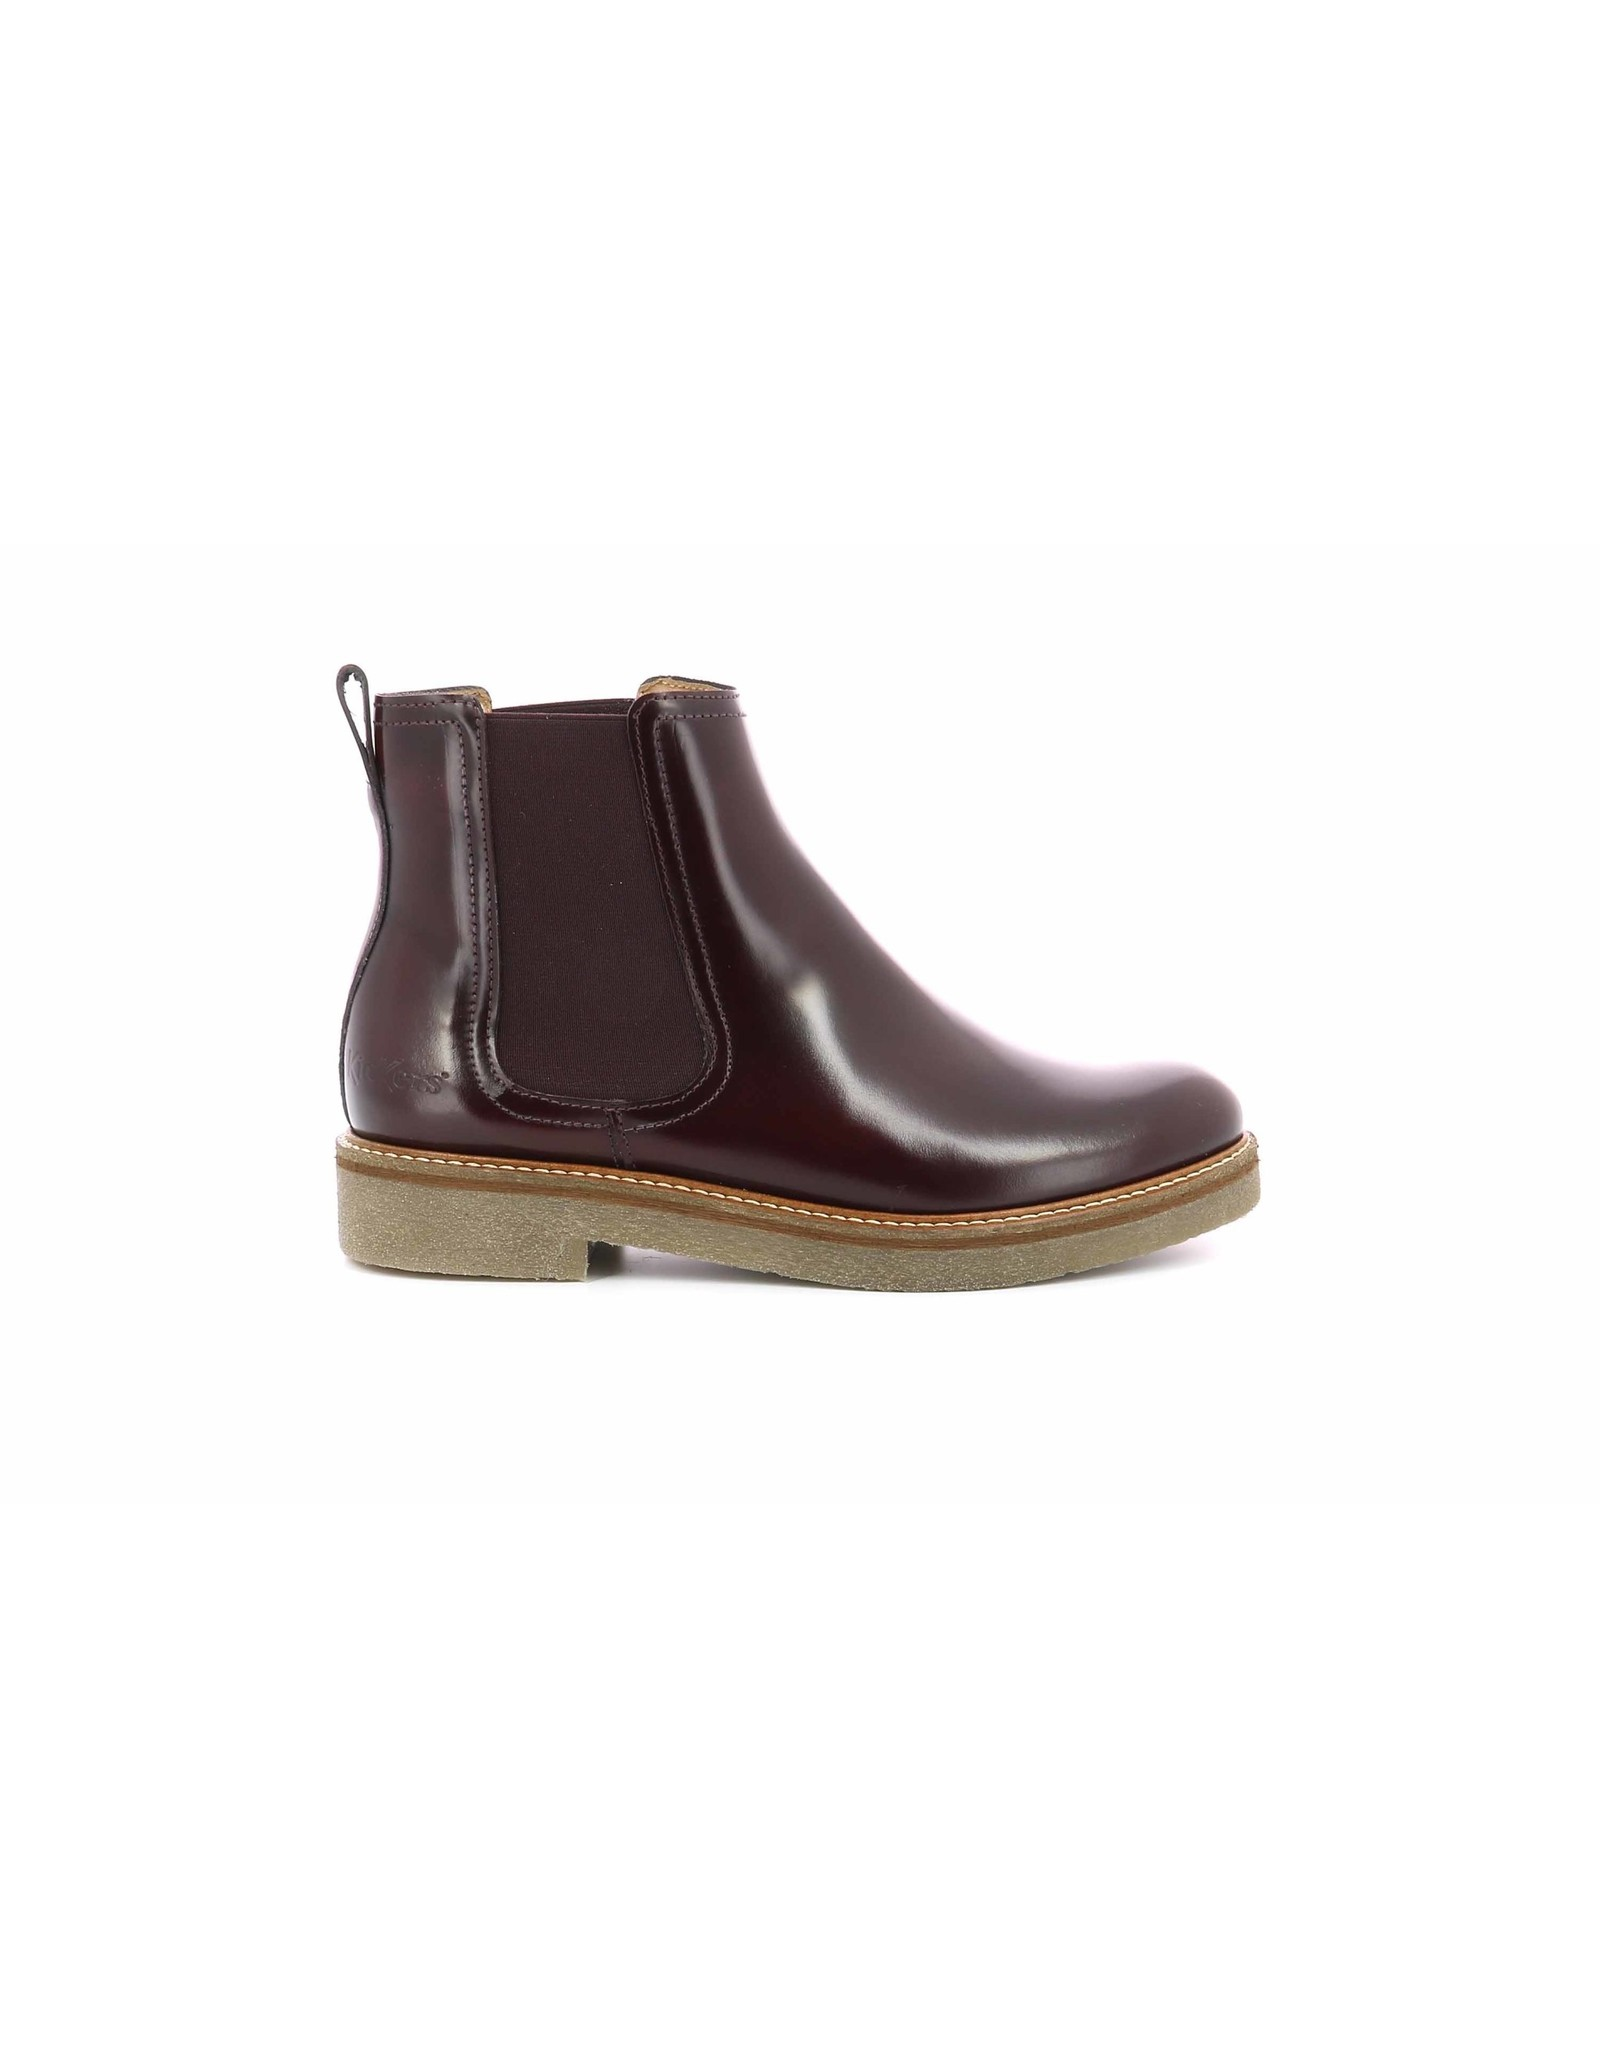 KICKERS OXFORDCHIC BORDEAUX K1999BO 19H512108-50